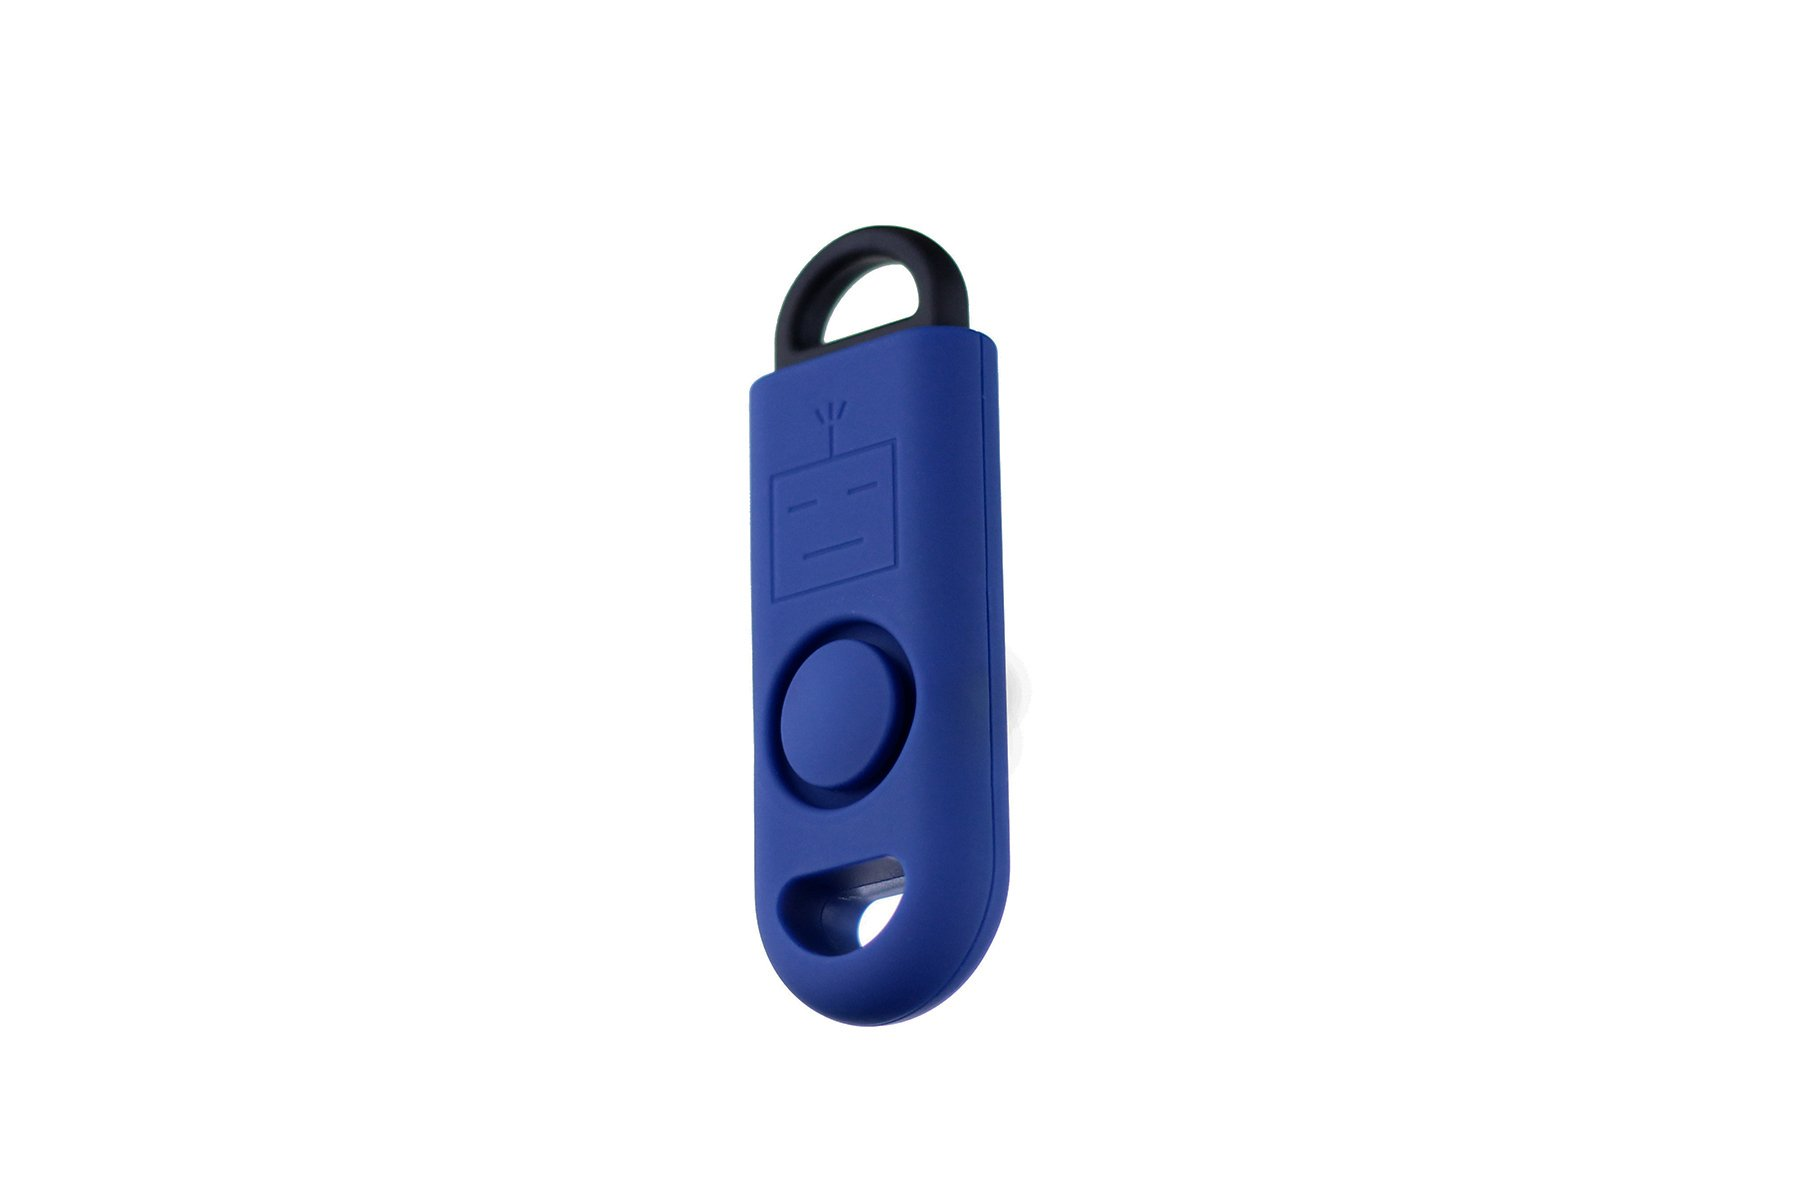 B A S U eAlarm+ with Tripwire Hook, Emergency Personal Alarm, Battery Included, Carabiner Included, Navy Blue by B A S U (Image #3)